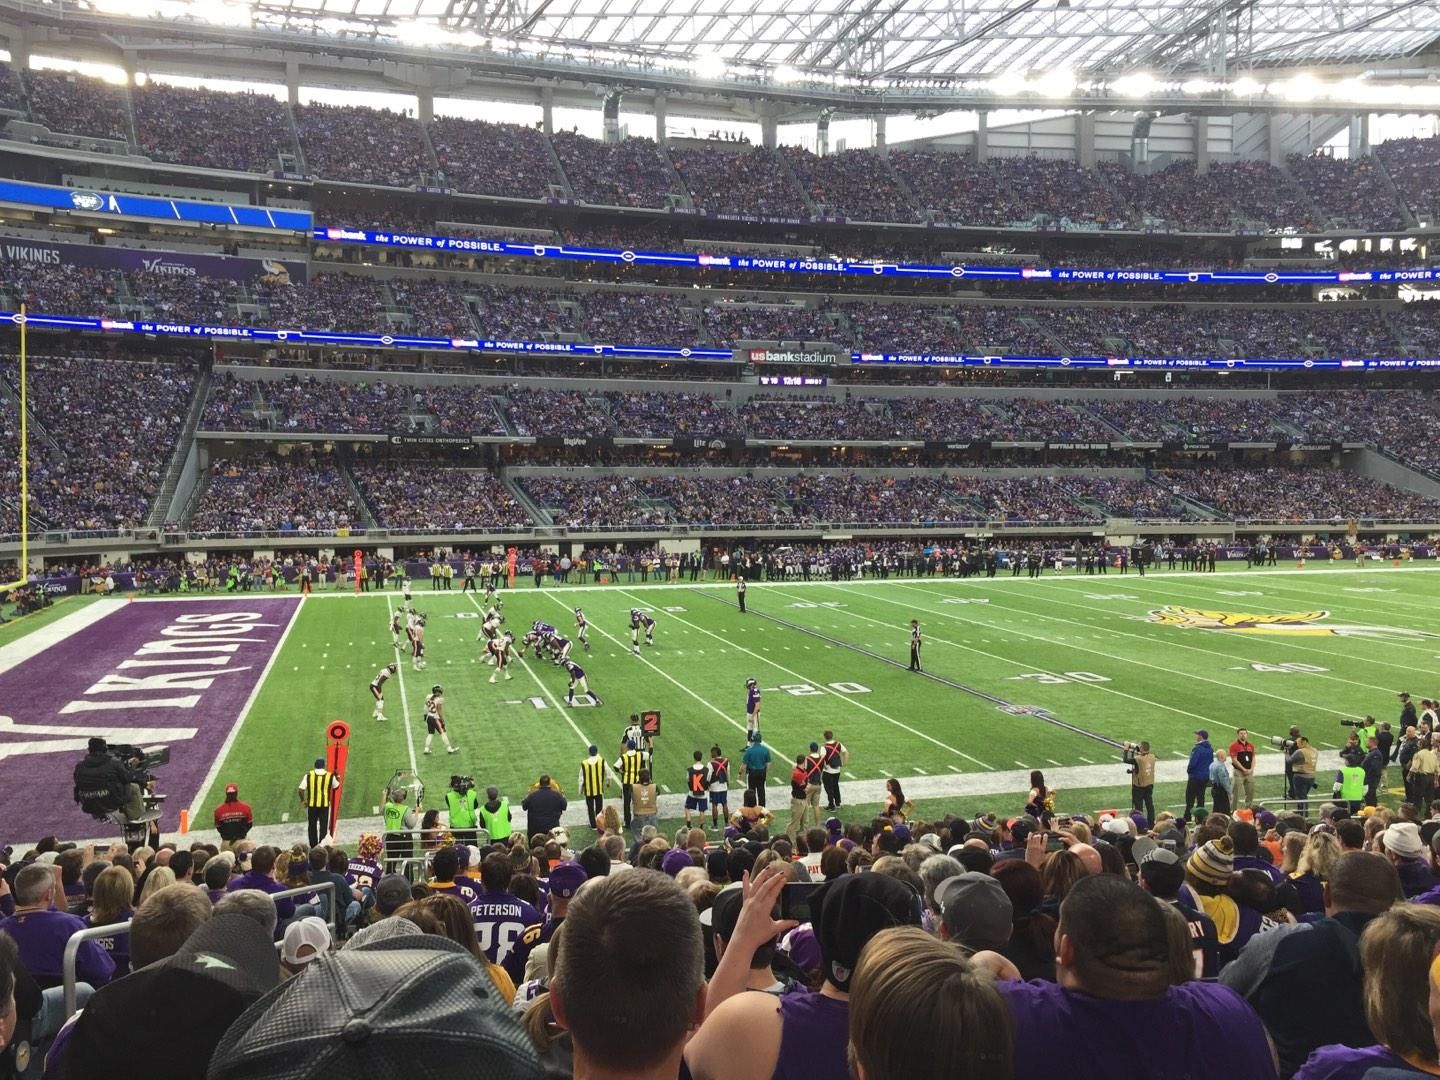 U.S. Bank Stadium Section 112 Row 18 Seat 20